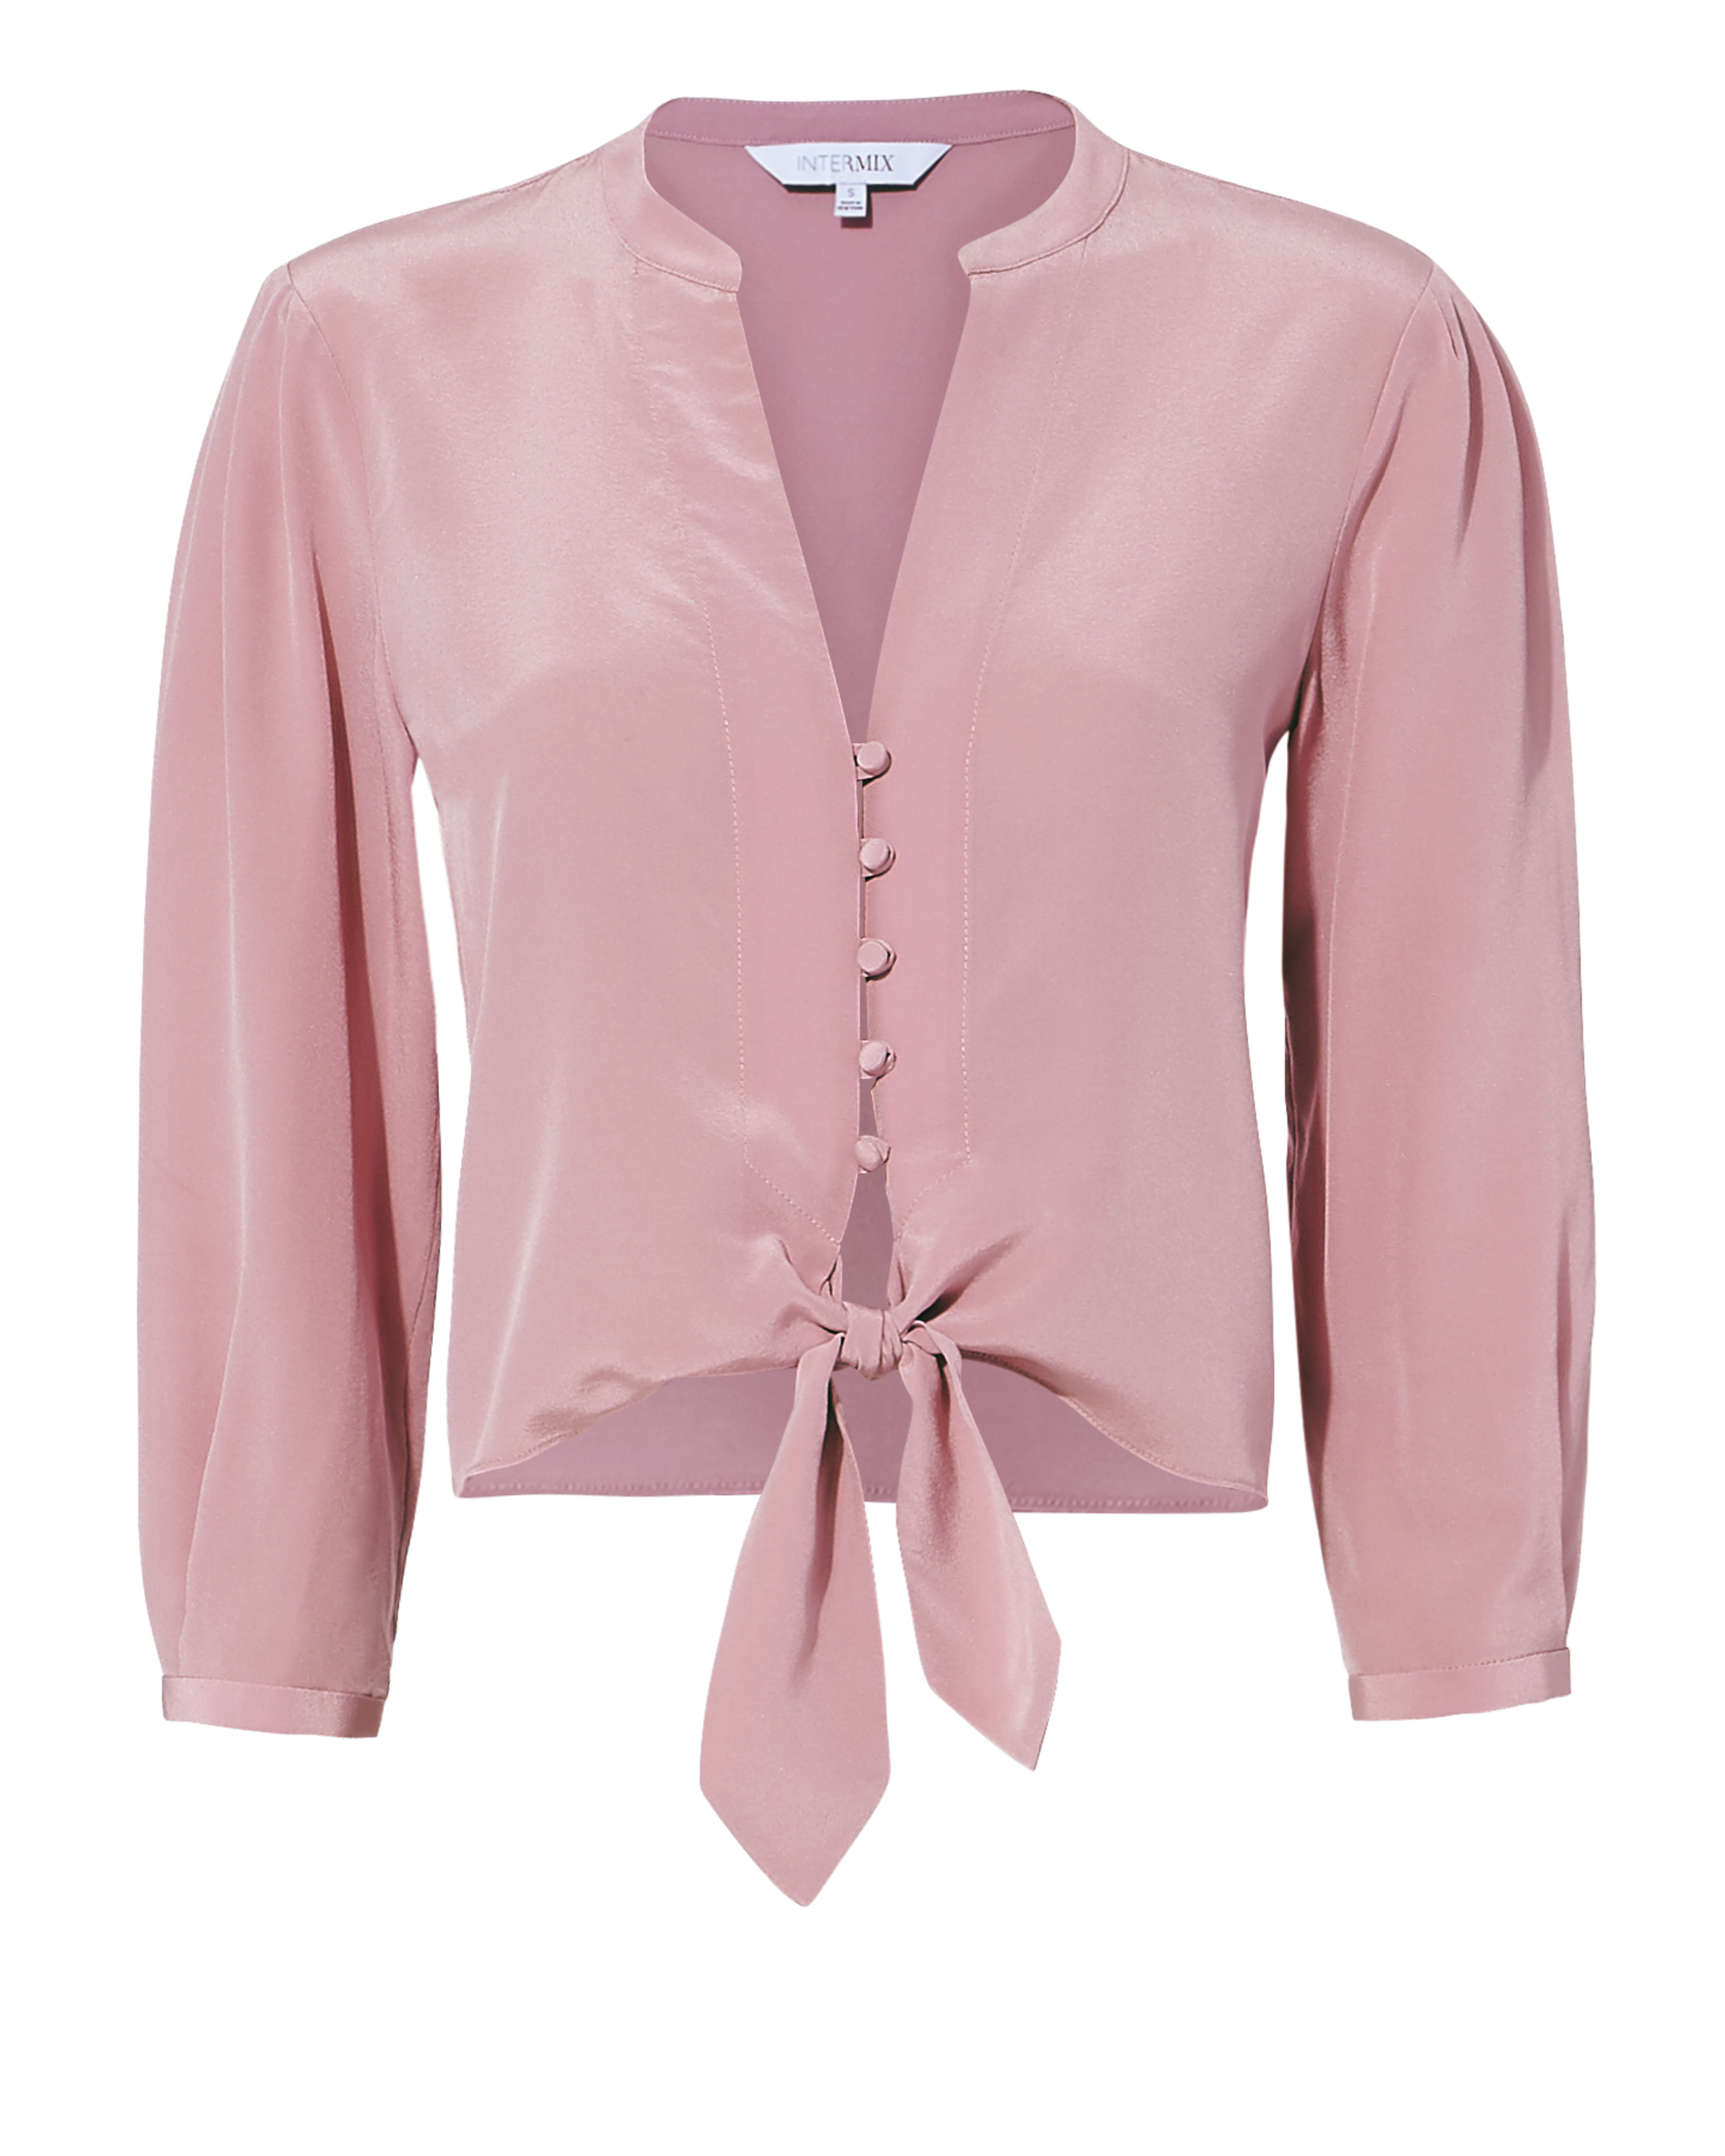 Violetta Tie Front Blouse by Intermix